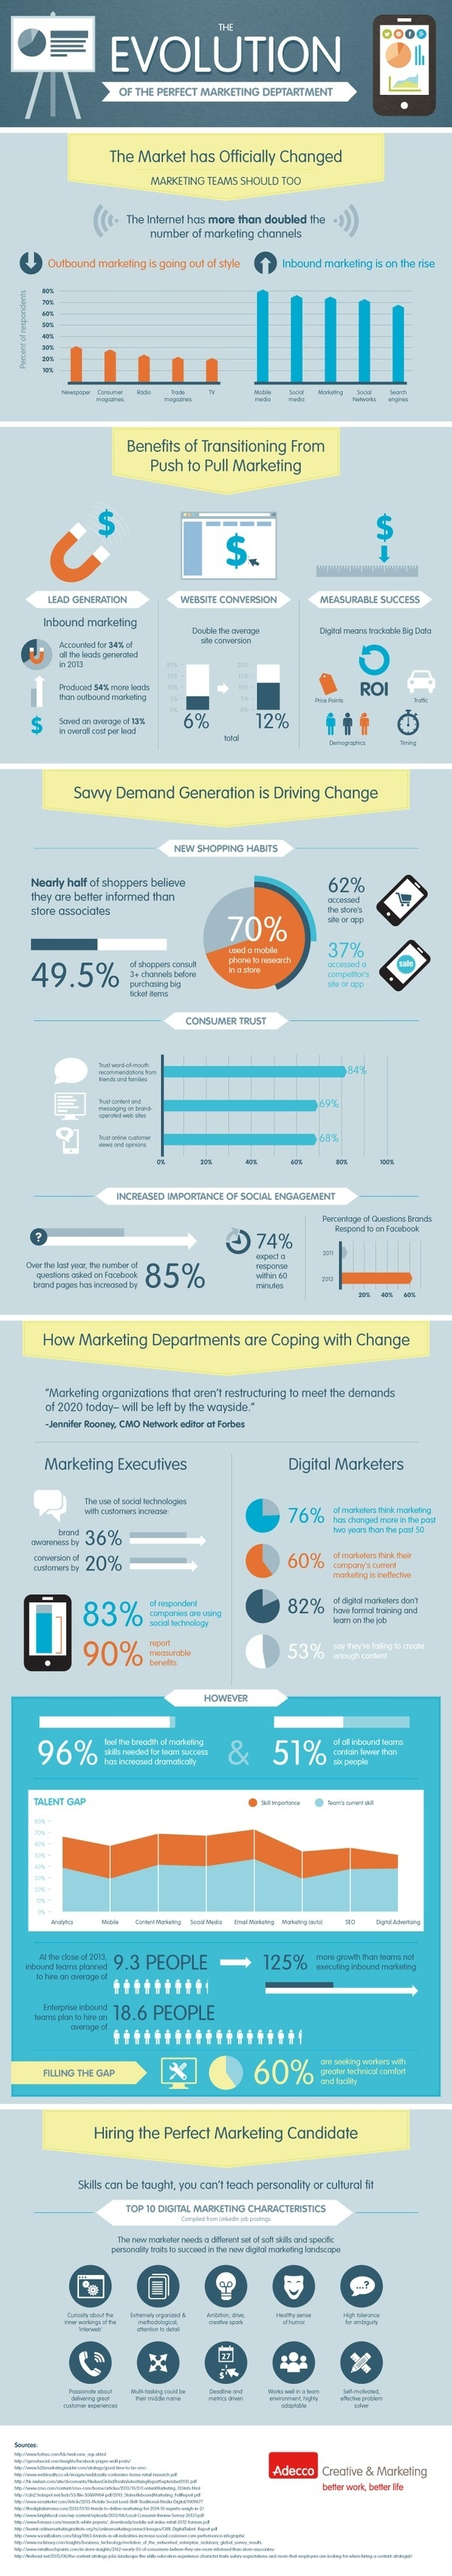 The Evolution of the Perfect Marketing Department #infographic